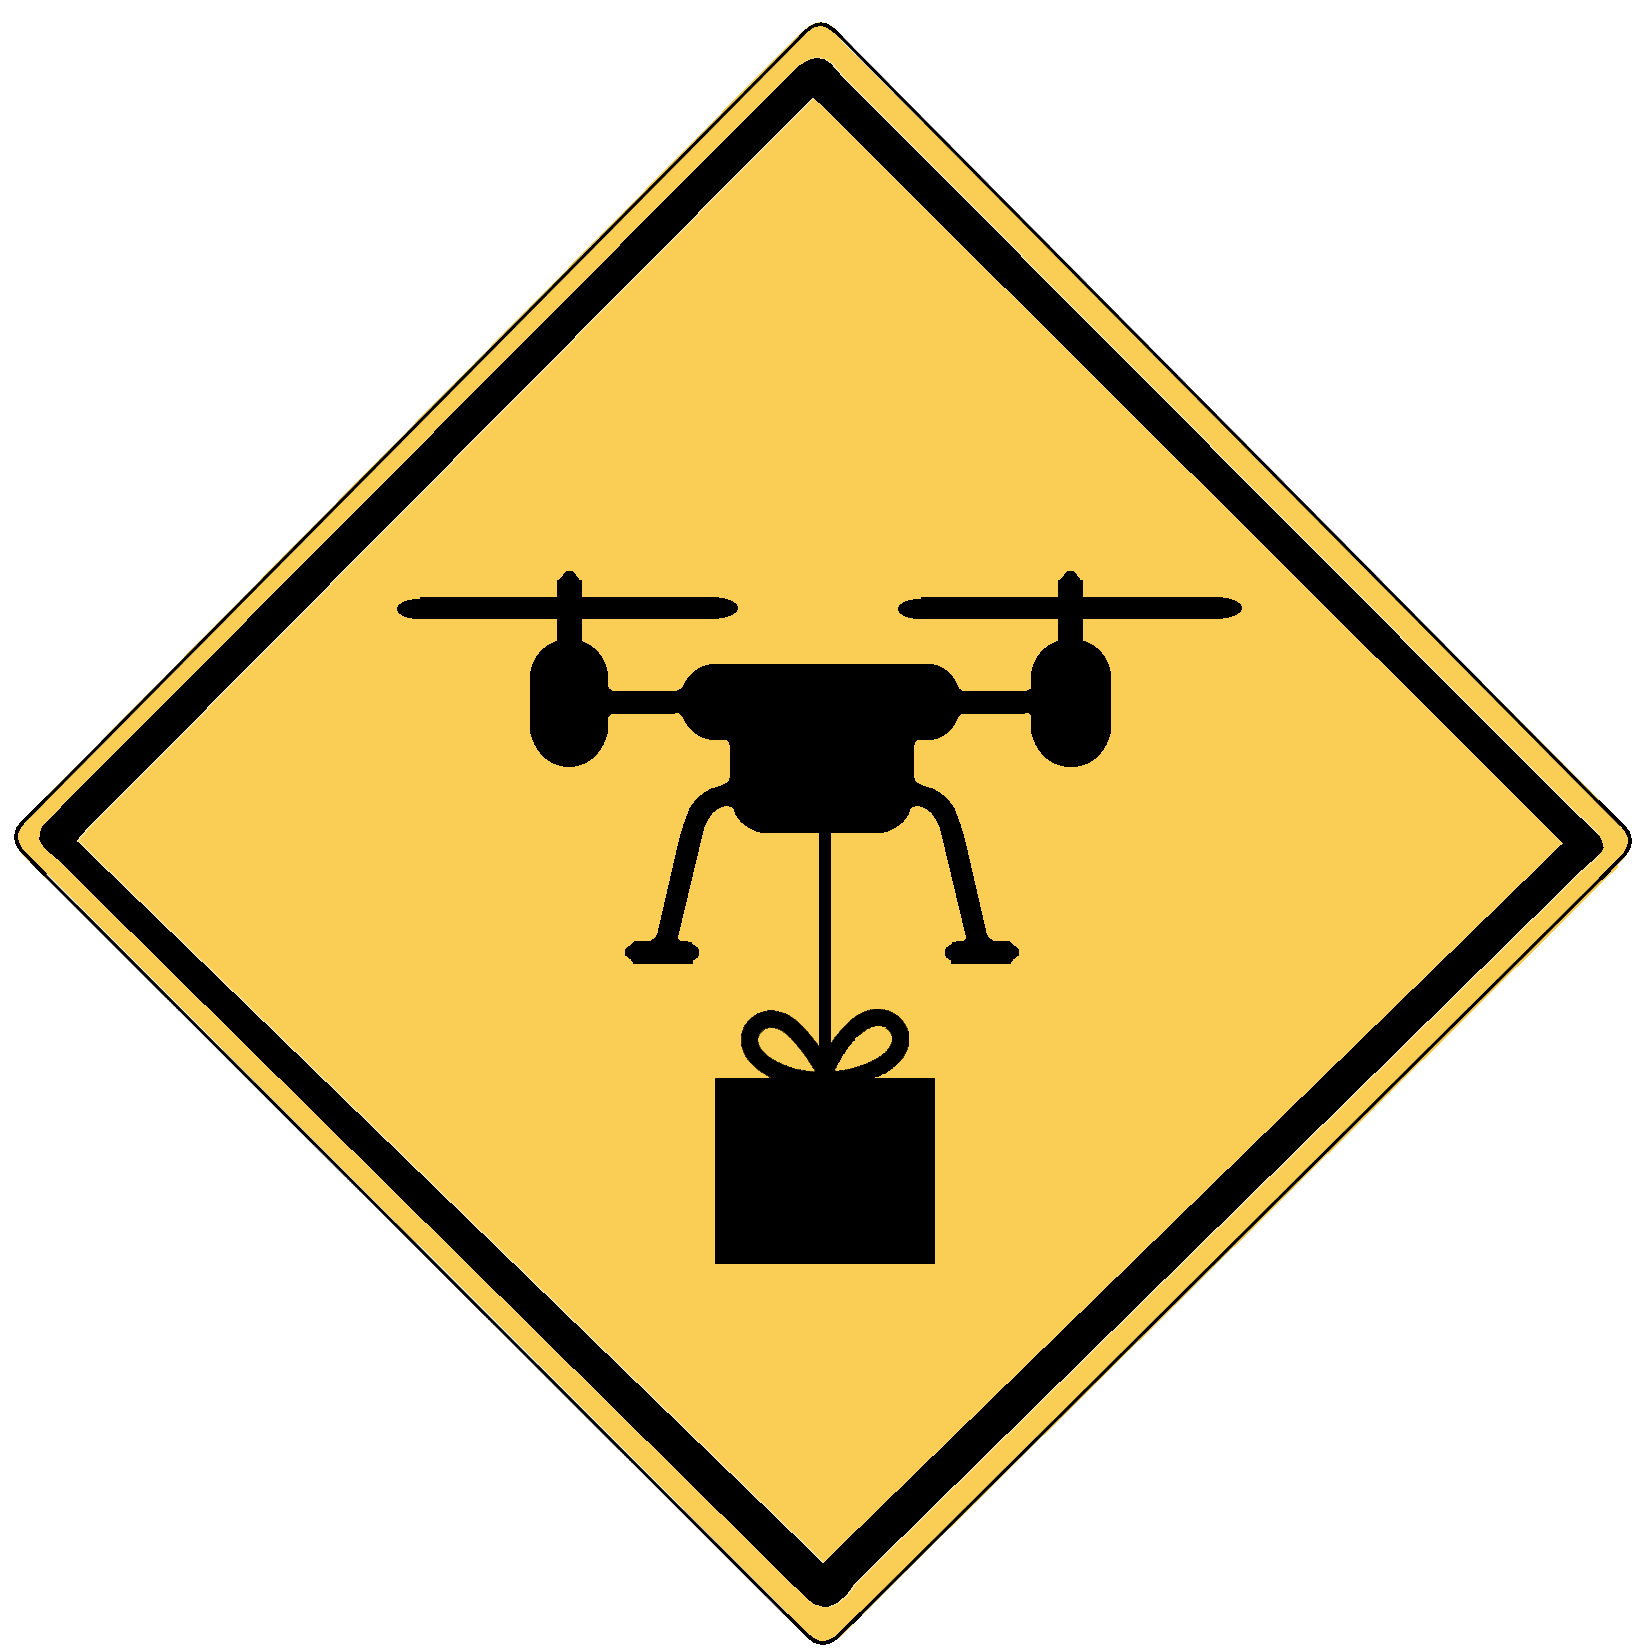 NCDOT drone sign